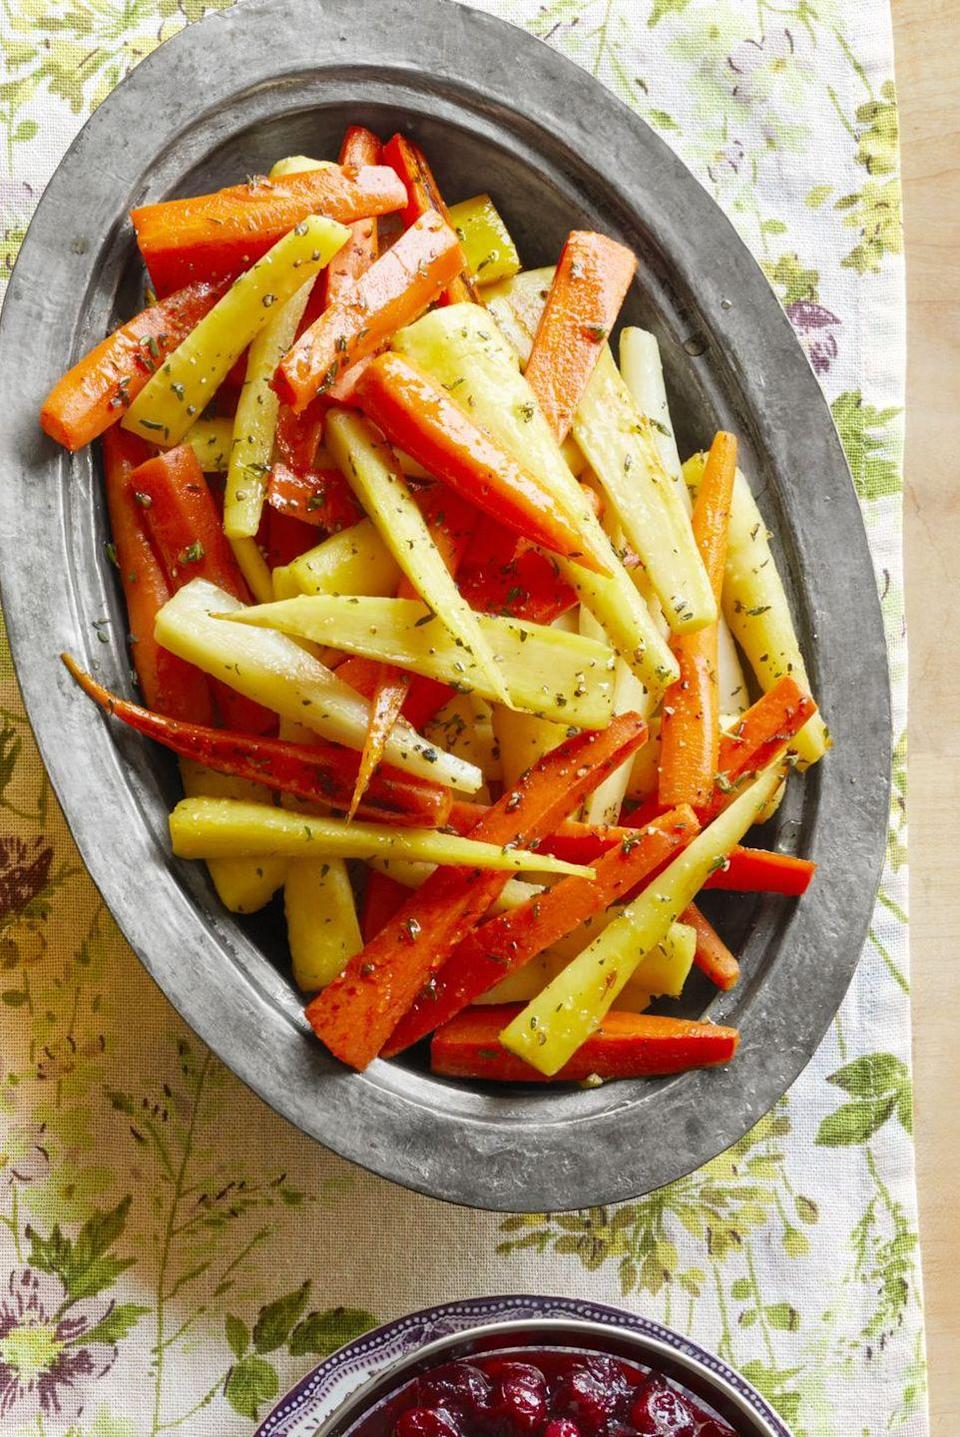 "<p>Glazed, flavorful vegetables pair perfectly with any entrée—and they'll look pretty on your table too. </p><p><strong><a href=""https://www.thepioneerwoman.com/food-cooking/recipes/a33248884/honey-glazed-carrots-and-parsnips-recipe/"" rel=""nofollow noopener"" target=""_blank"" data-ylk=""slk:Get the recipe"" class=""link rapid-noclick-resp"">Get the recipe</a>.</strong></p><p><strong><a class=""link rapid-noclick-resp"" href=""https://go.redirectingat.com?id=74968X1596630&url=https%3A%2F%2Fwww.walmart.com%2Fip%2FThe-Pioneer-Woman-Timeless-Beauty-Cast-Iron-Set-3-Piece%2F55468725&sref=https%3A%2F%2Fwww.thepioneerwoman.com%2Ffood-cooking%2Fmeals-menus%2Fg35589850%2Fmothers-day-dinner-ideas%2F"" rel=""nofollow noopener"" target=""_blank"" data-ylk=""slk:SHOP SKILLETS"">SHOP SKILLETS</a></strong></p>"